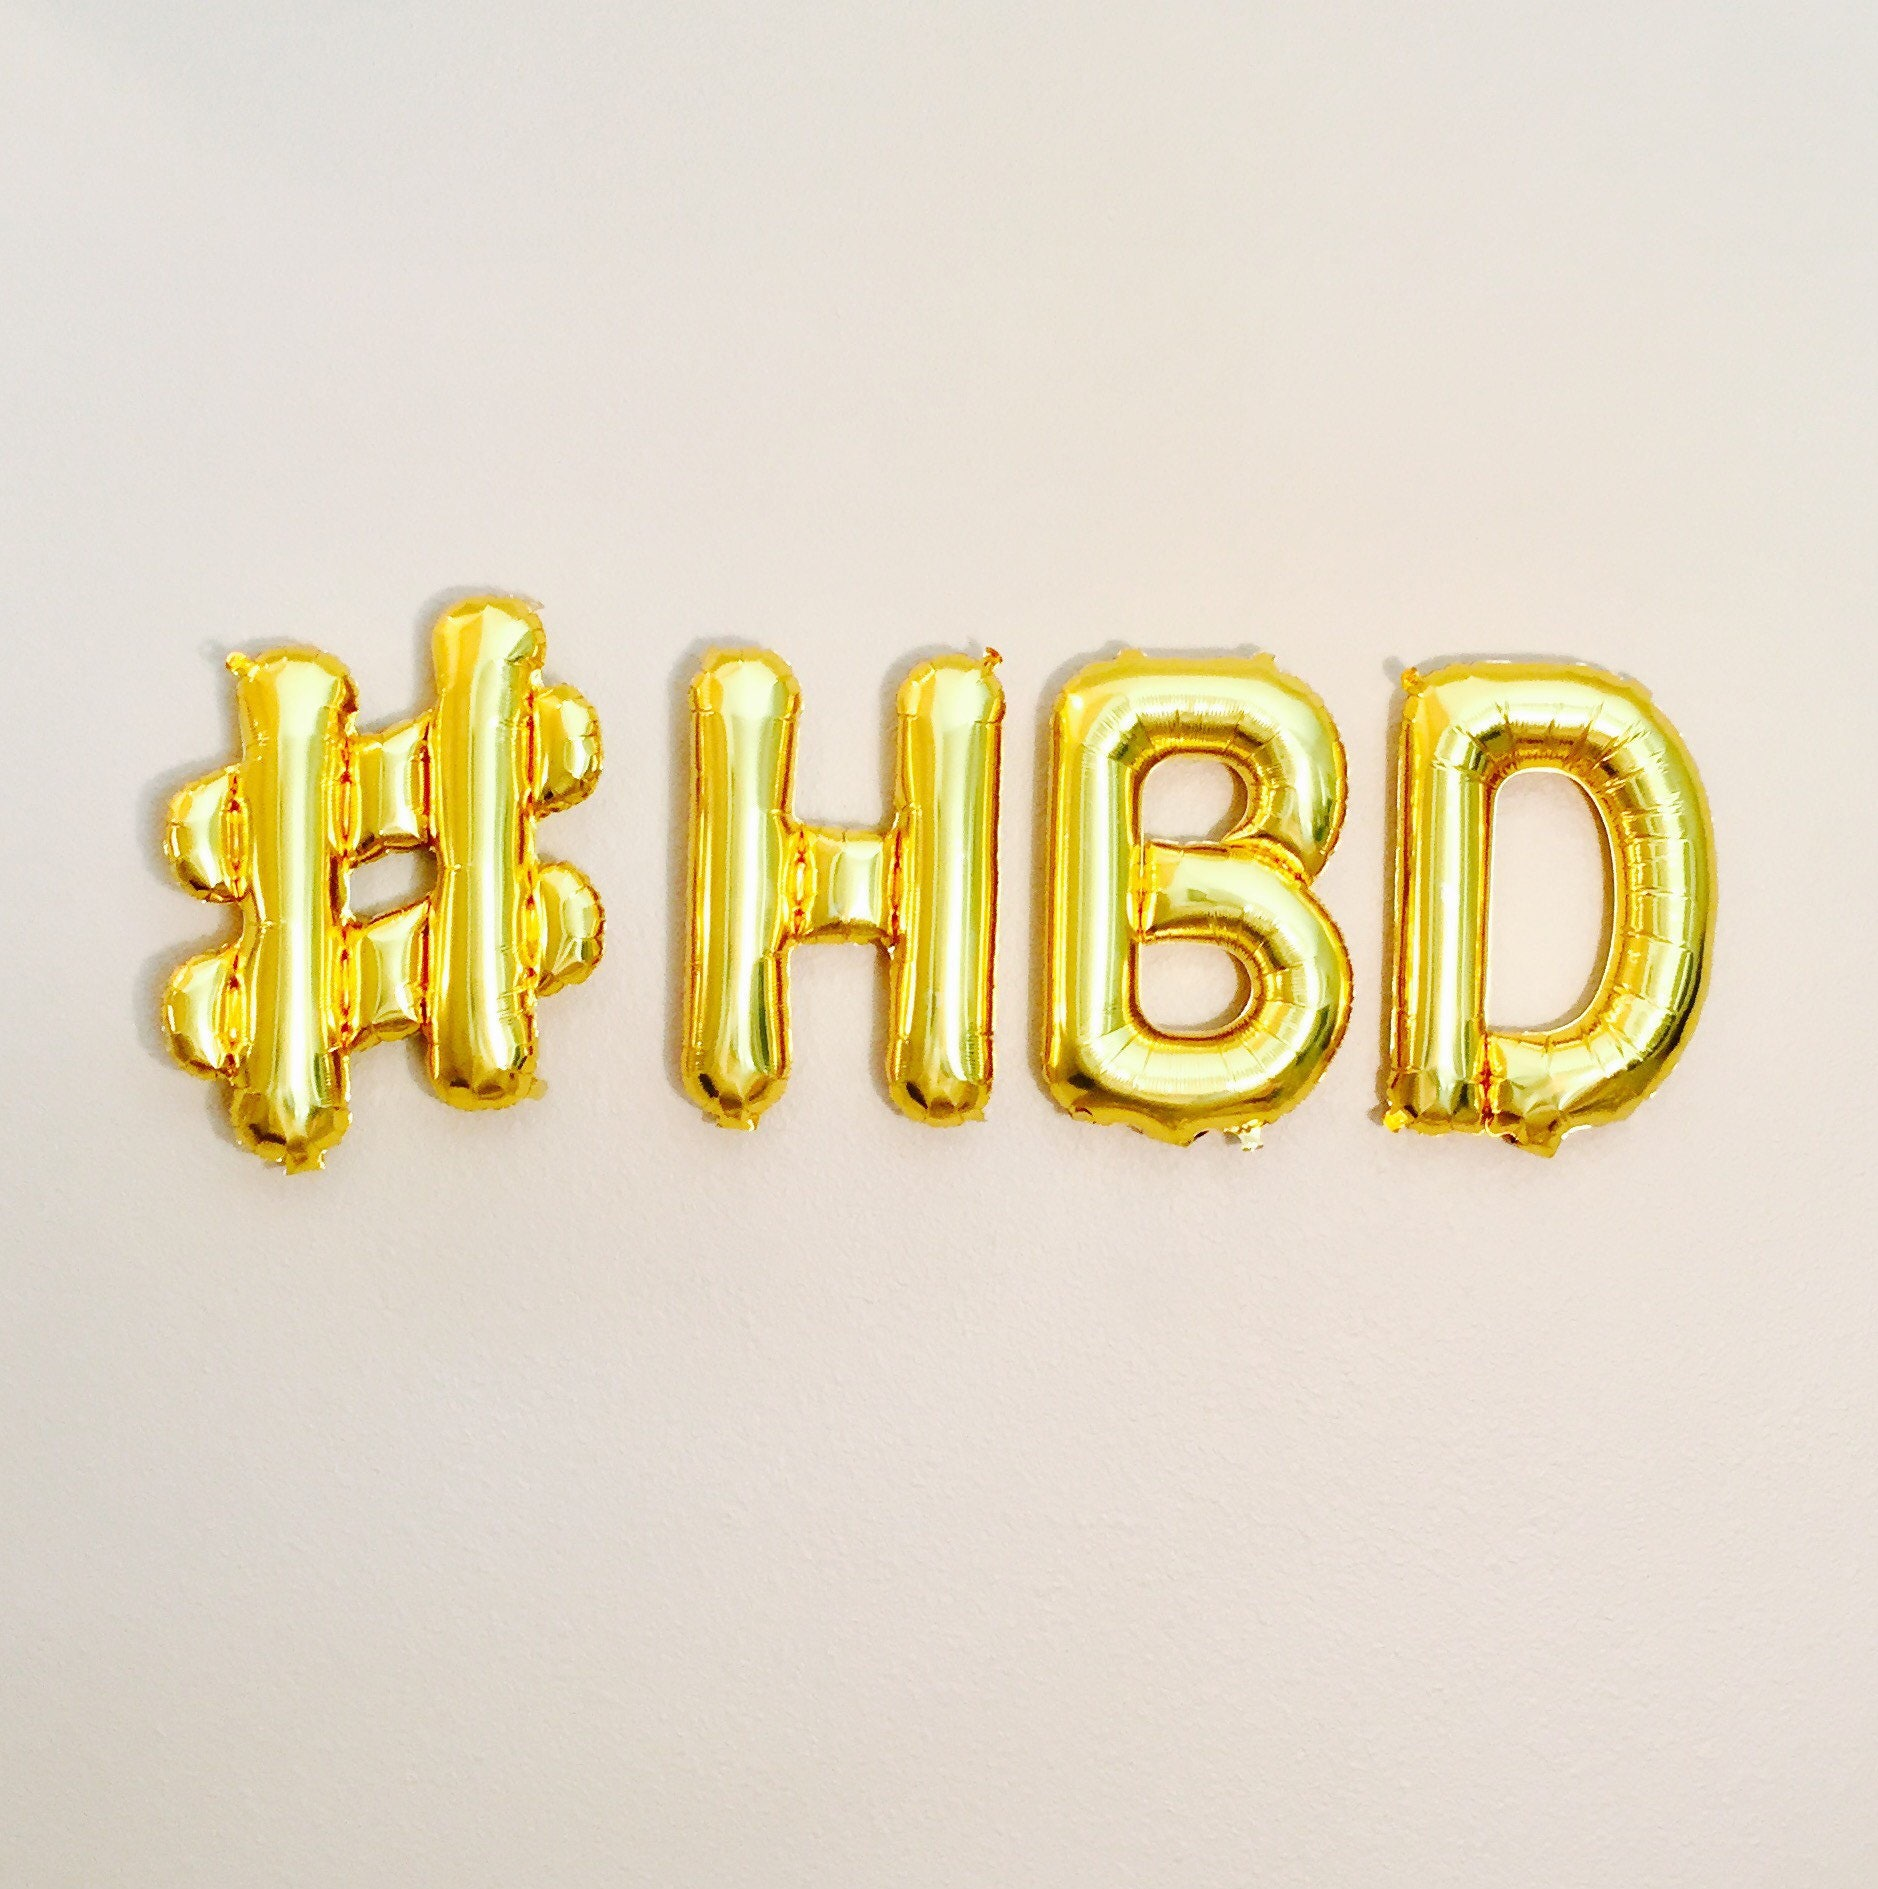 hbd balloon banner happy bday banner happy birthday happy. Black Bedroom Furniture Sets. Home Design Ideas